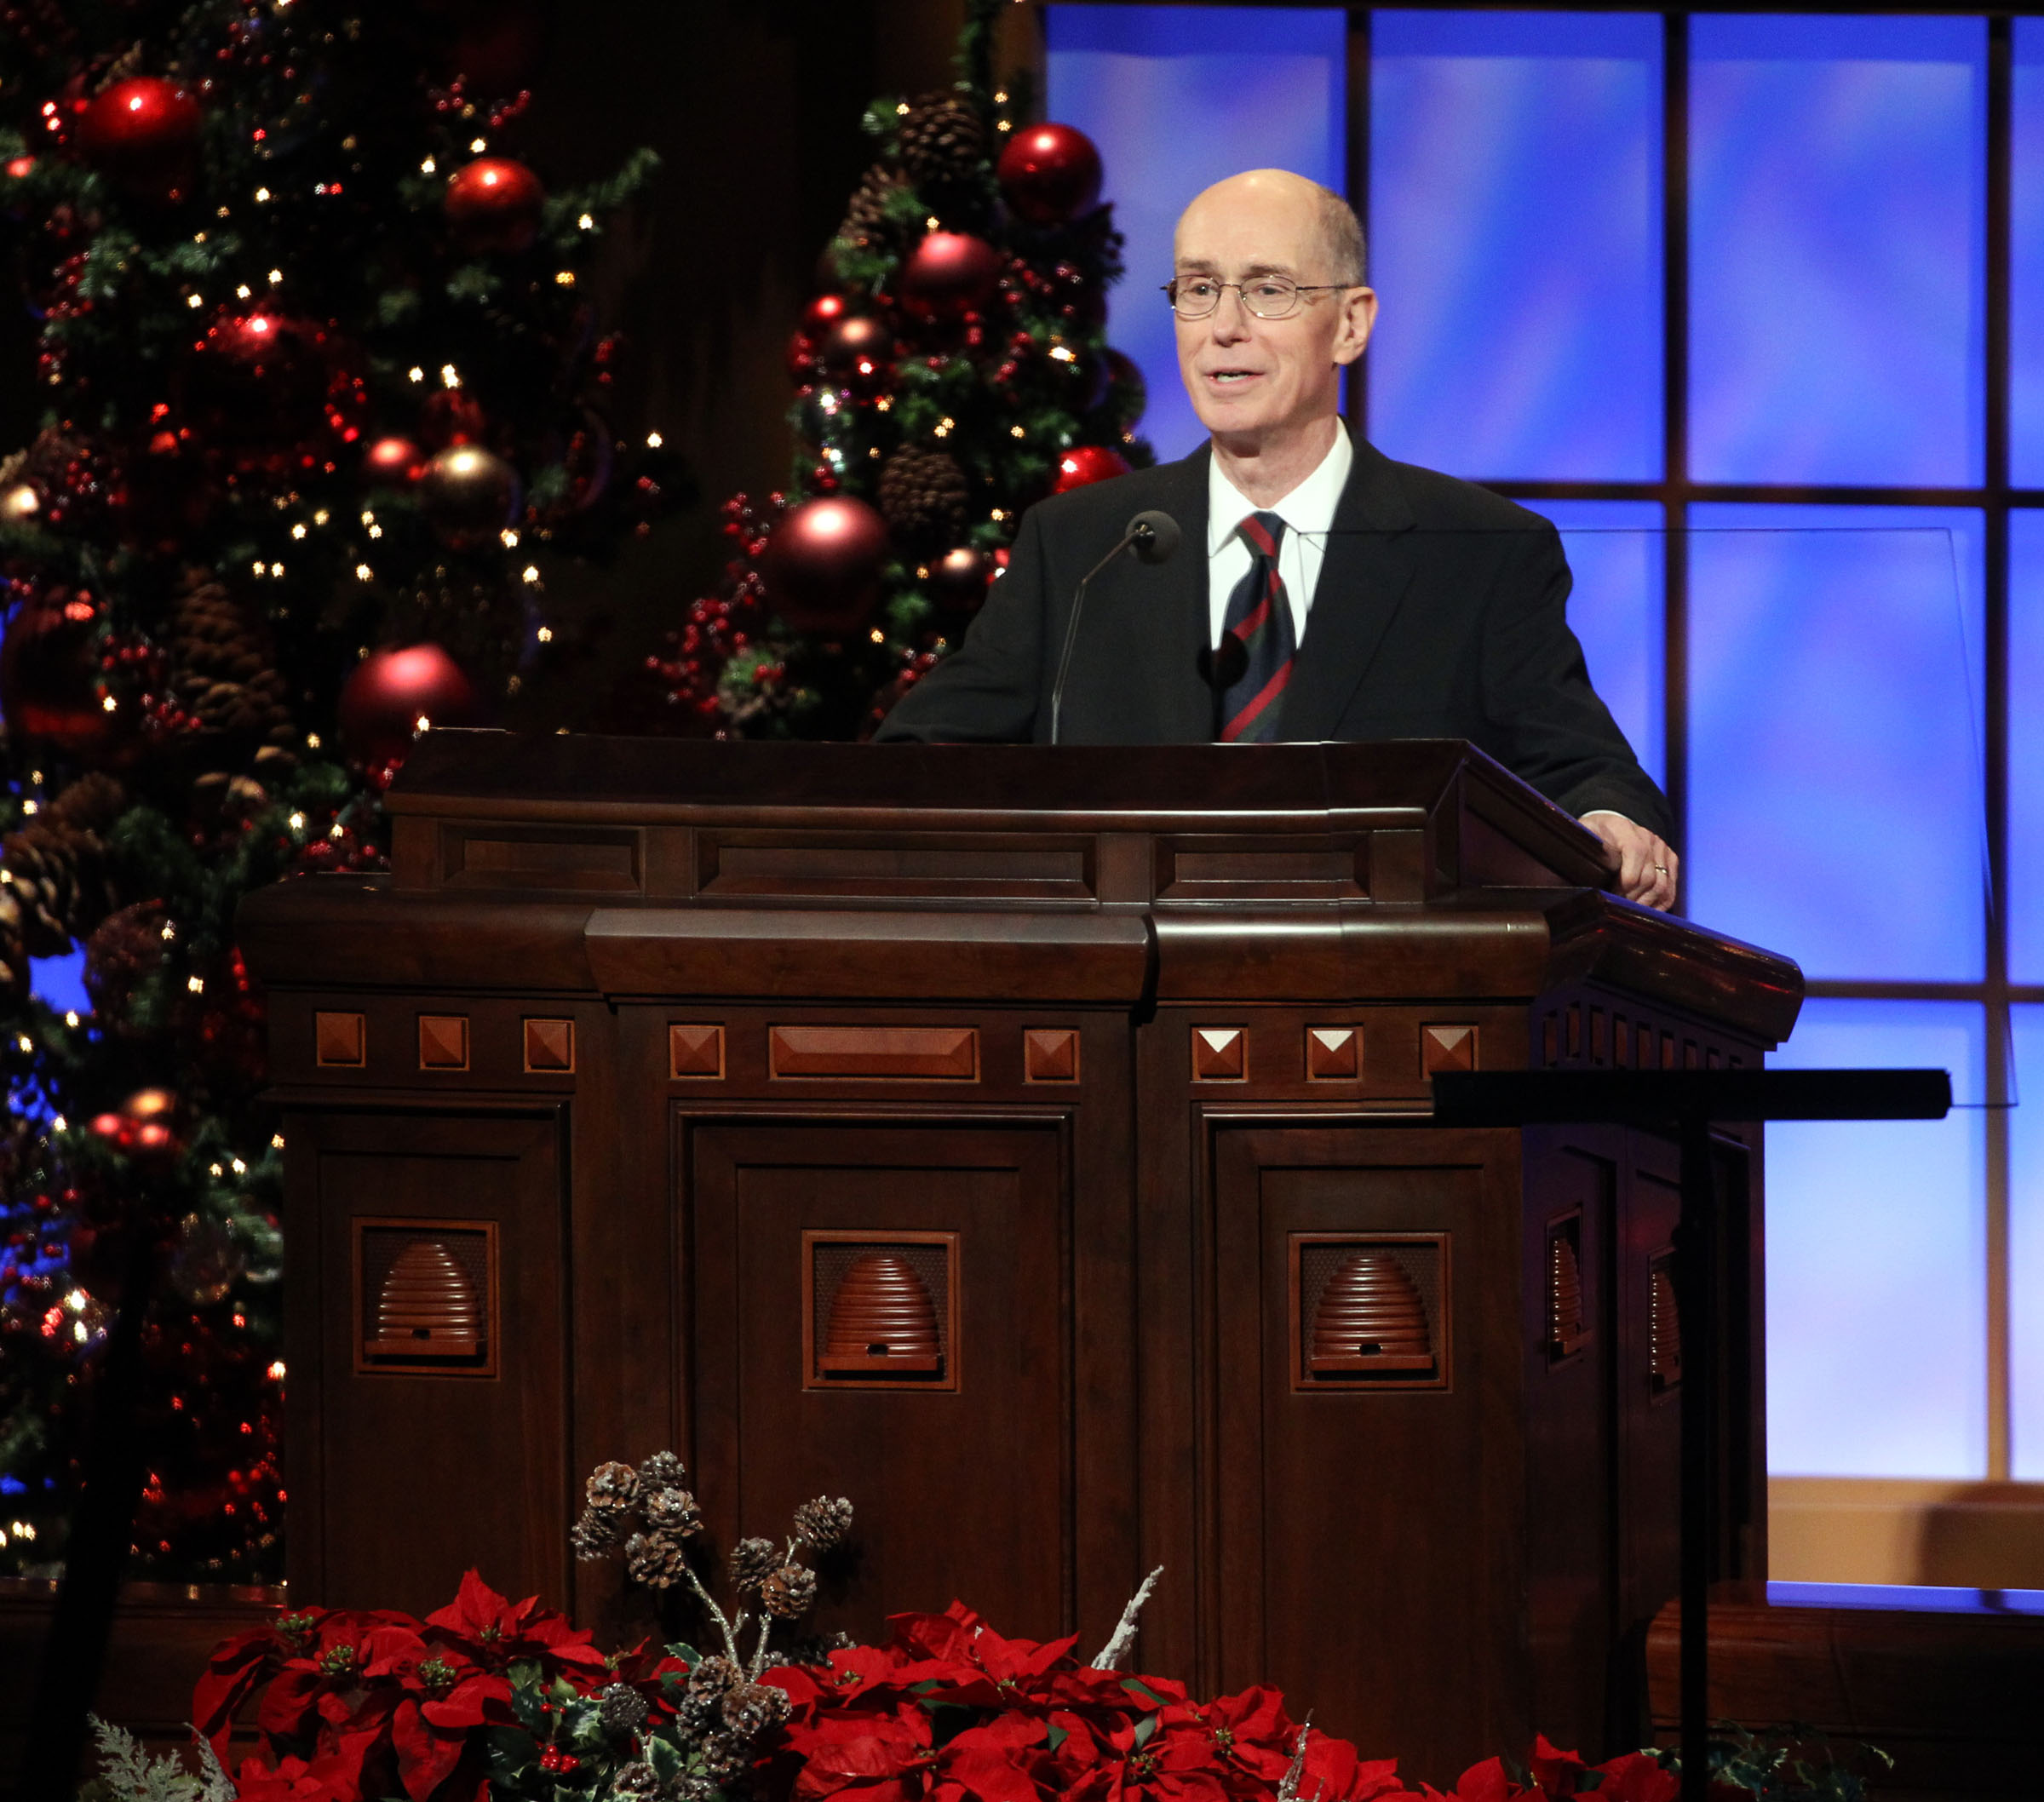 President Henry B. Eyring speaks to thousands during the First Presidency Christmas Devotional in the Conference Center in Salt Lake City on Sunday, Dec. 5, 2010.